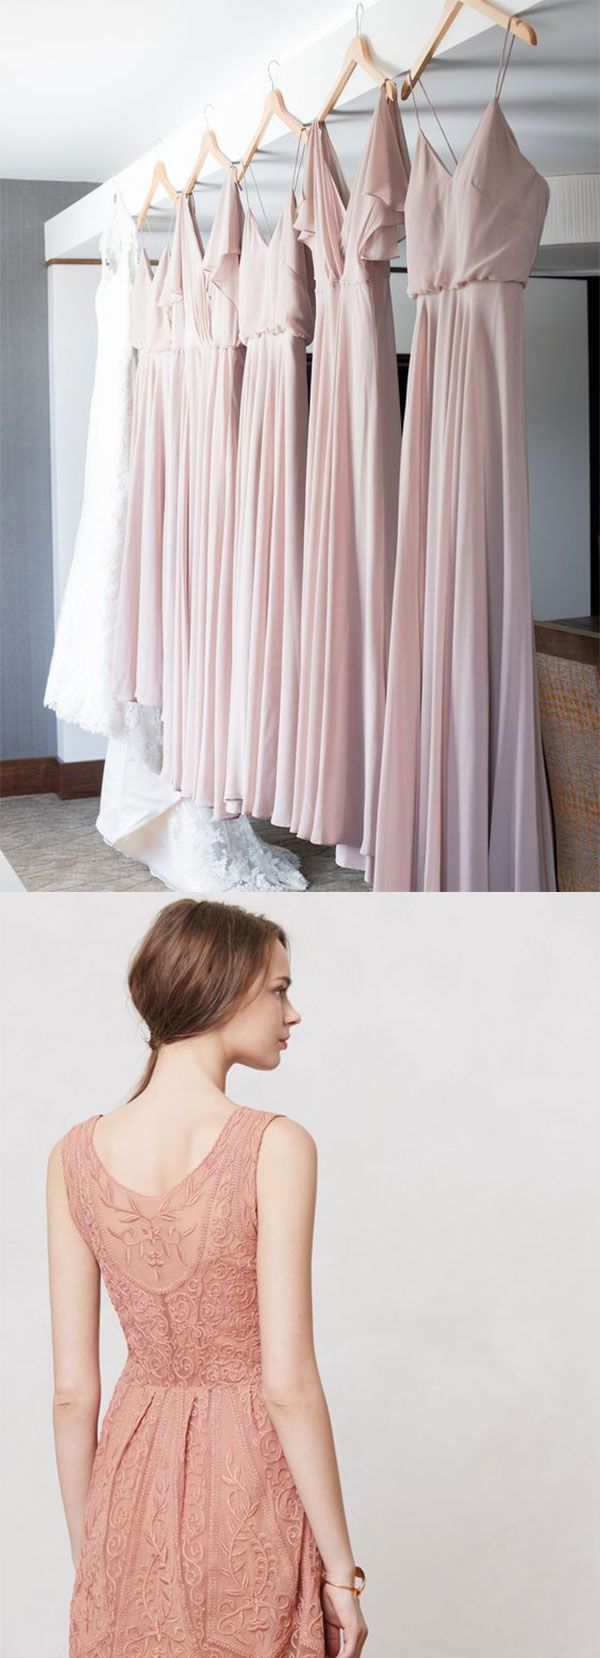 Rose colored wedding dress  GLAMOROUS RUSTIC FALL WEDDING COLOR PALETTES ROSE PINK INCORPORATED